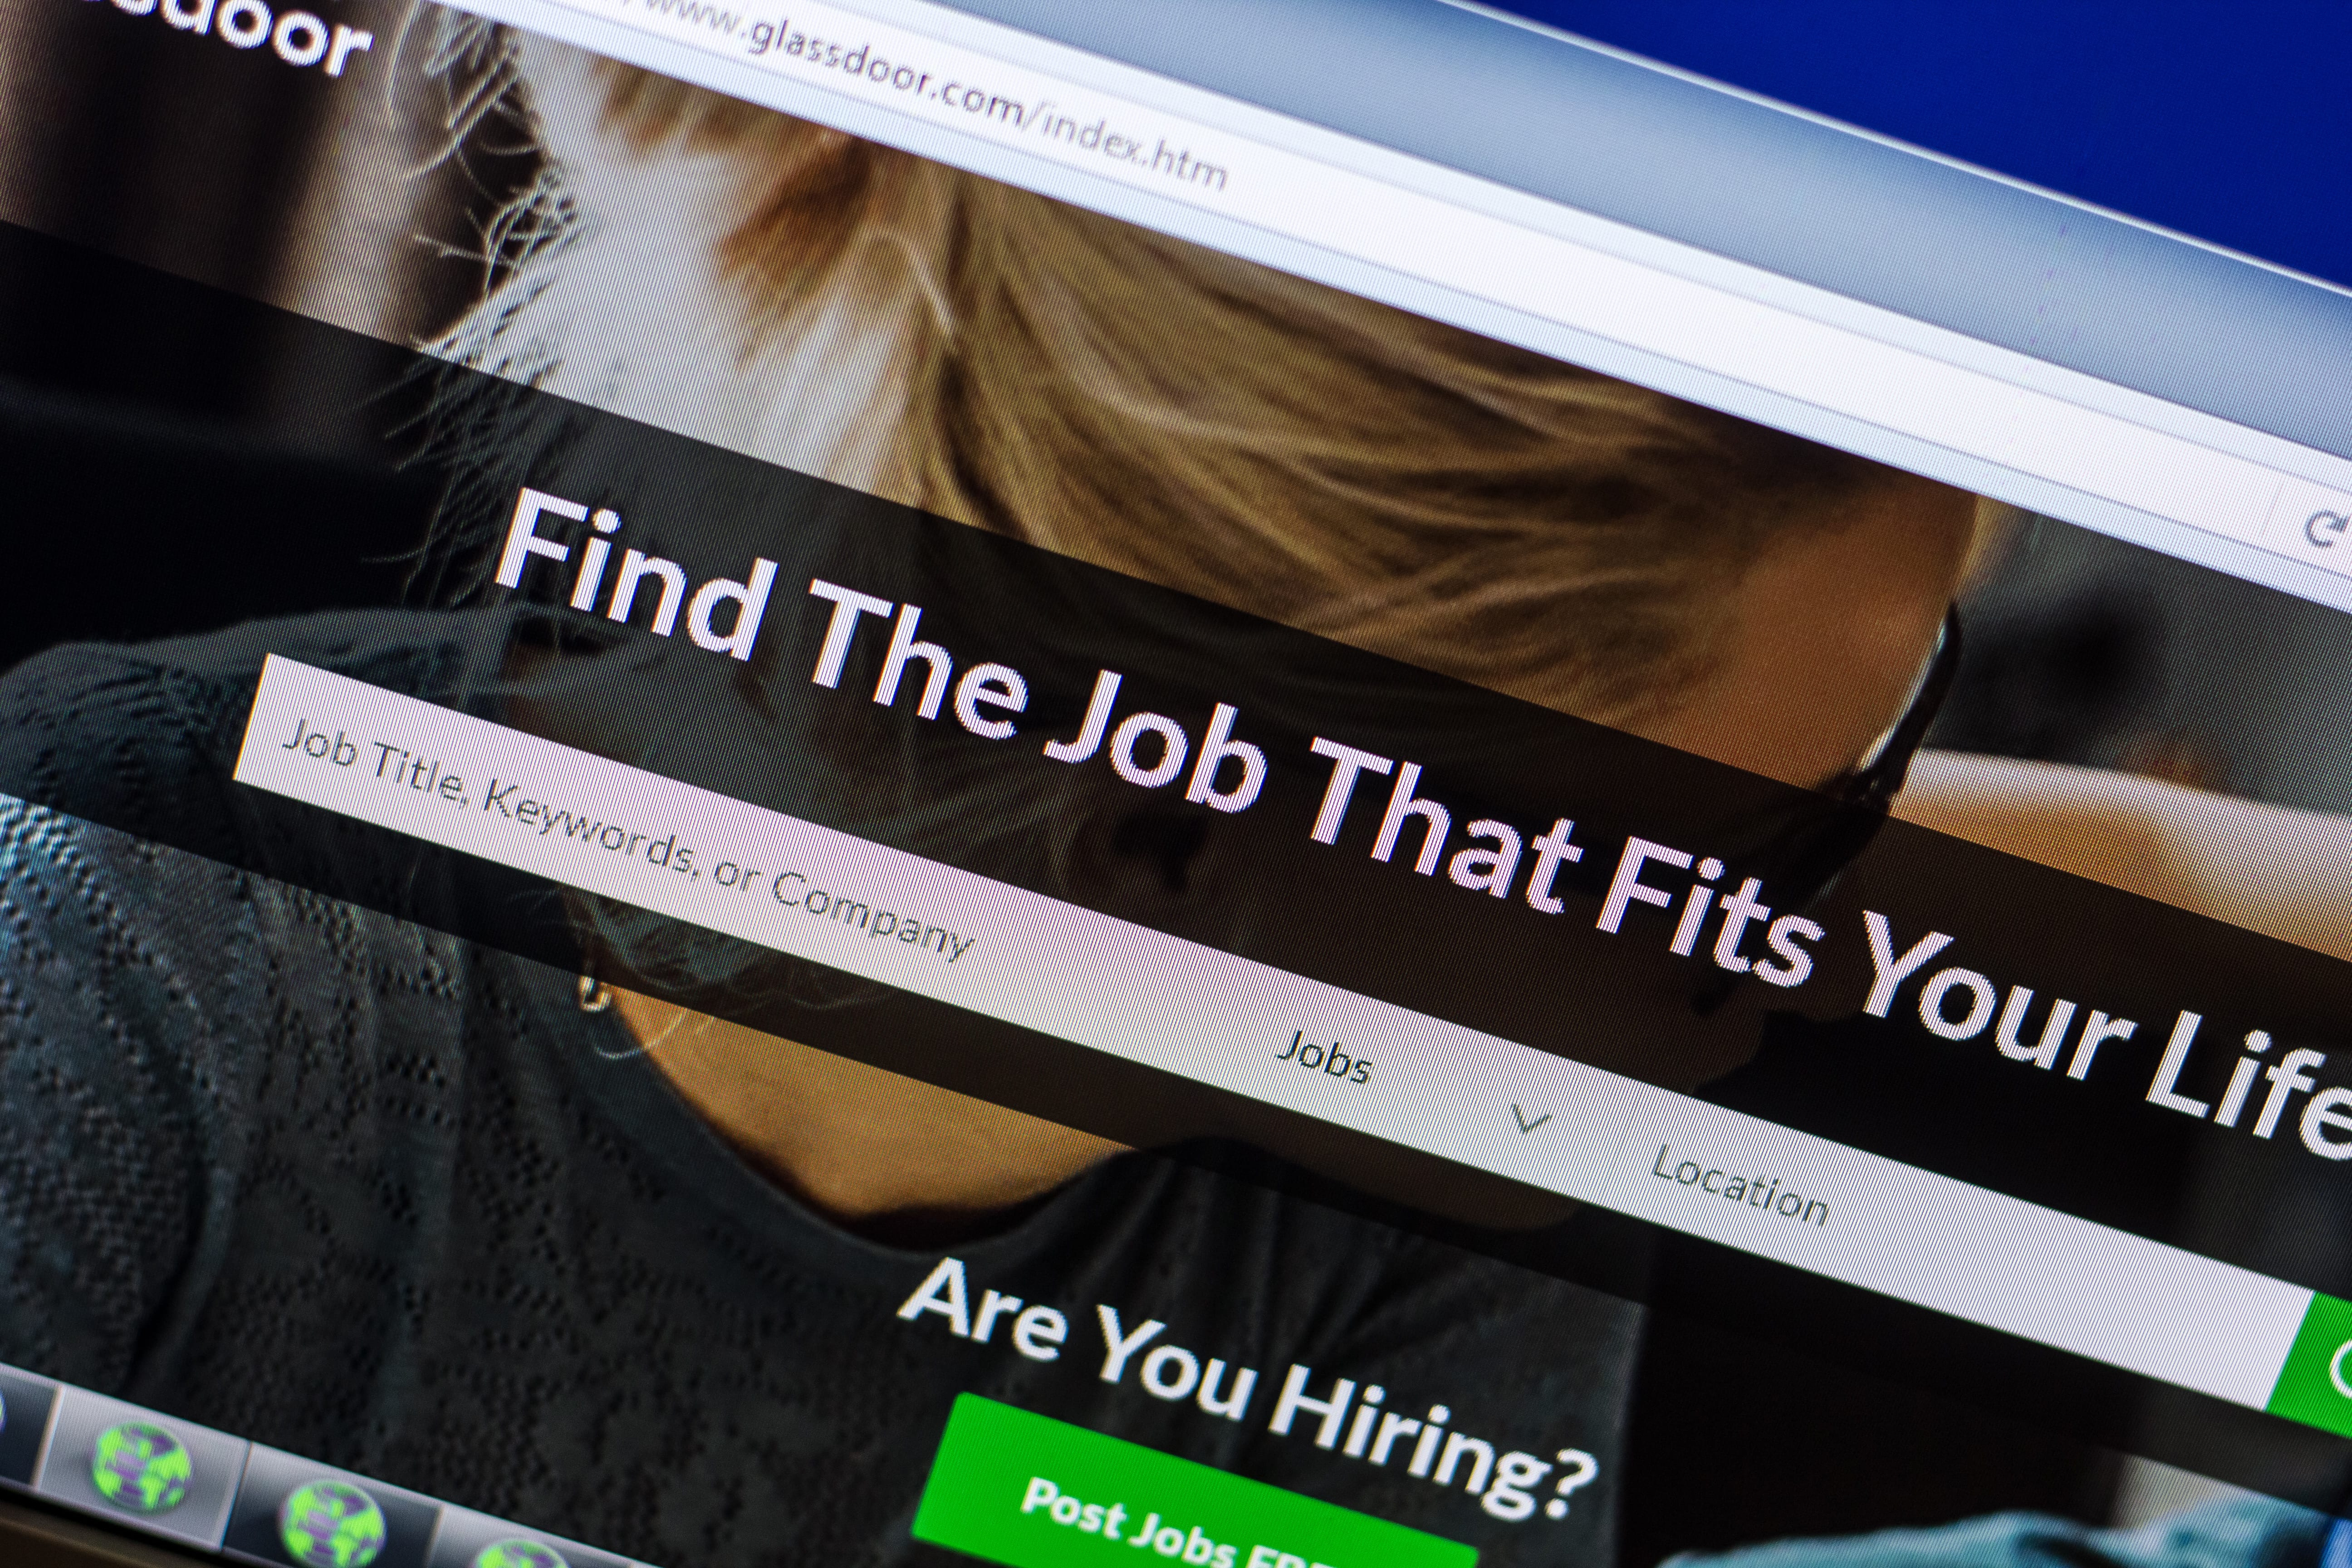 How To Target Job Postings To Get Leads